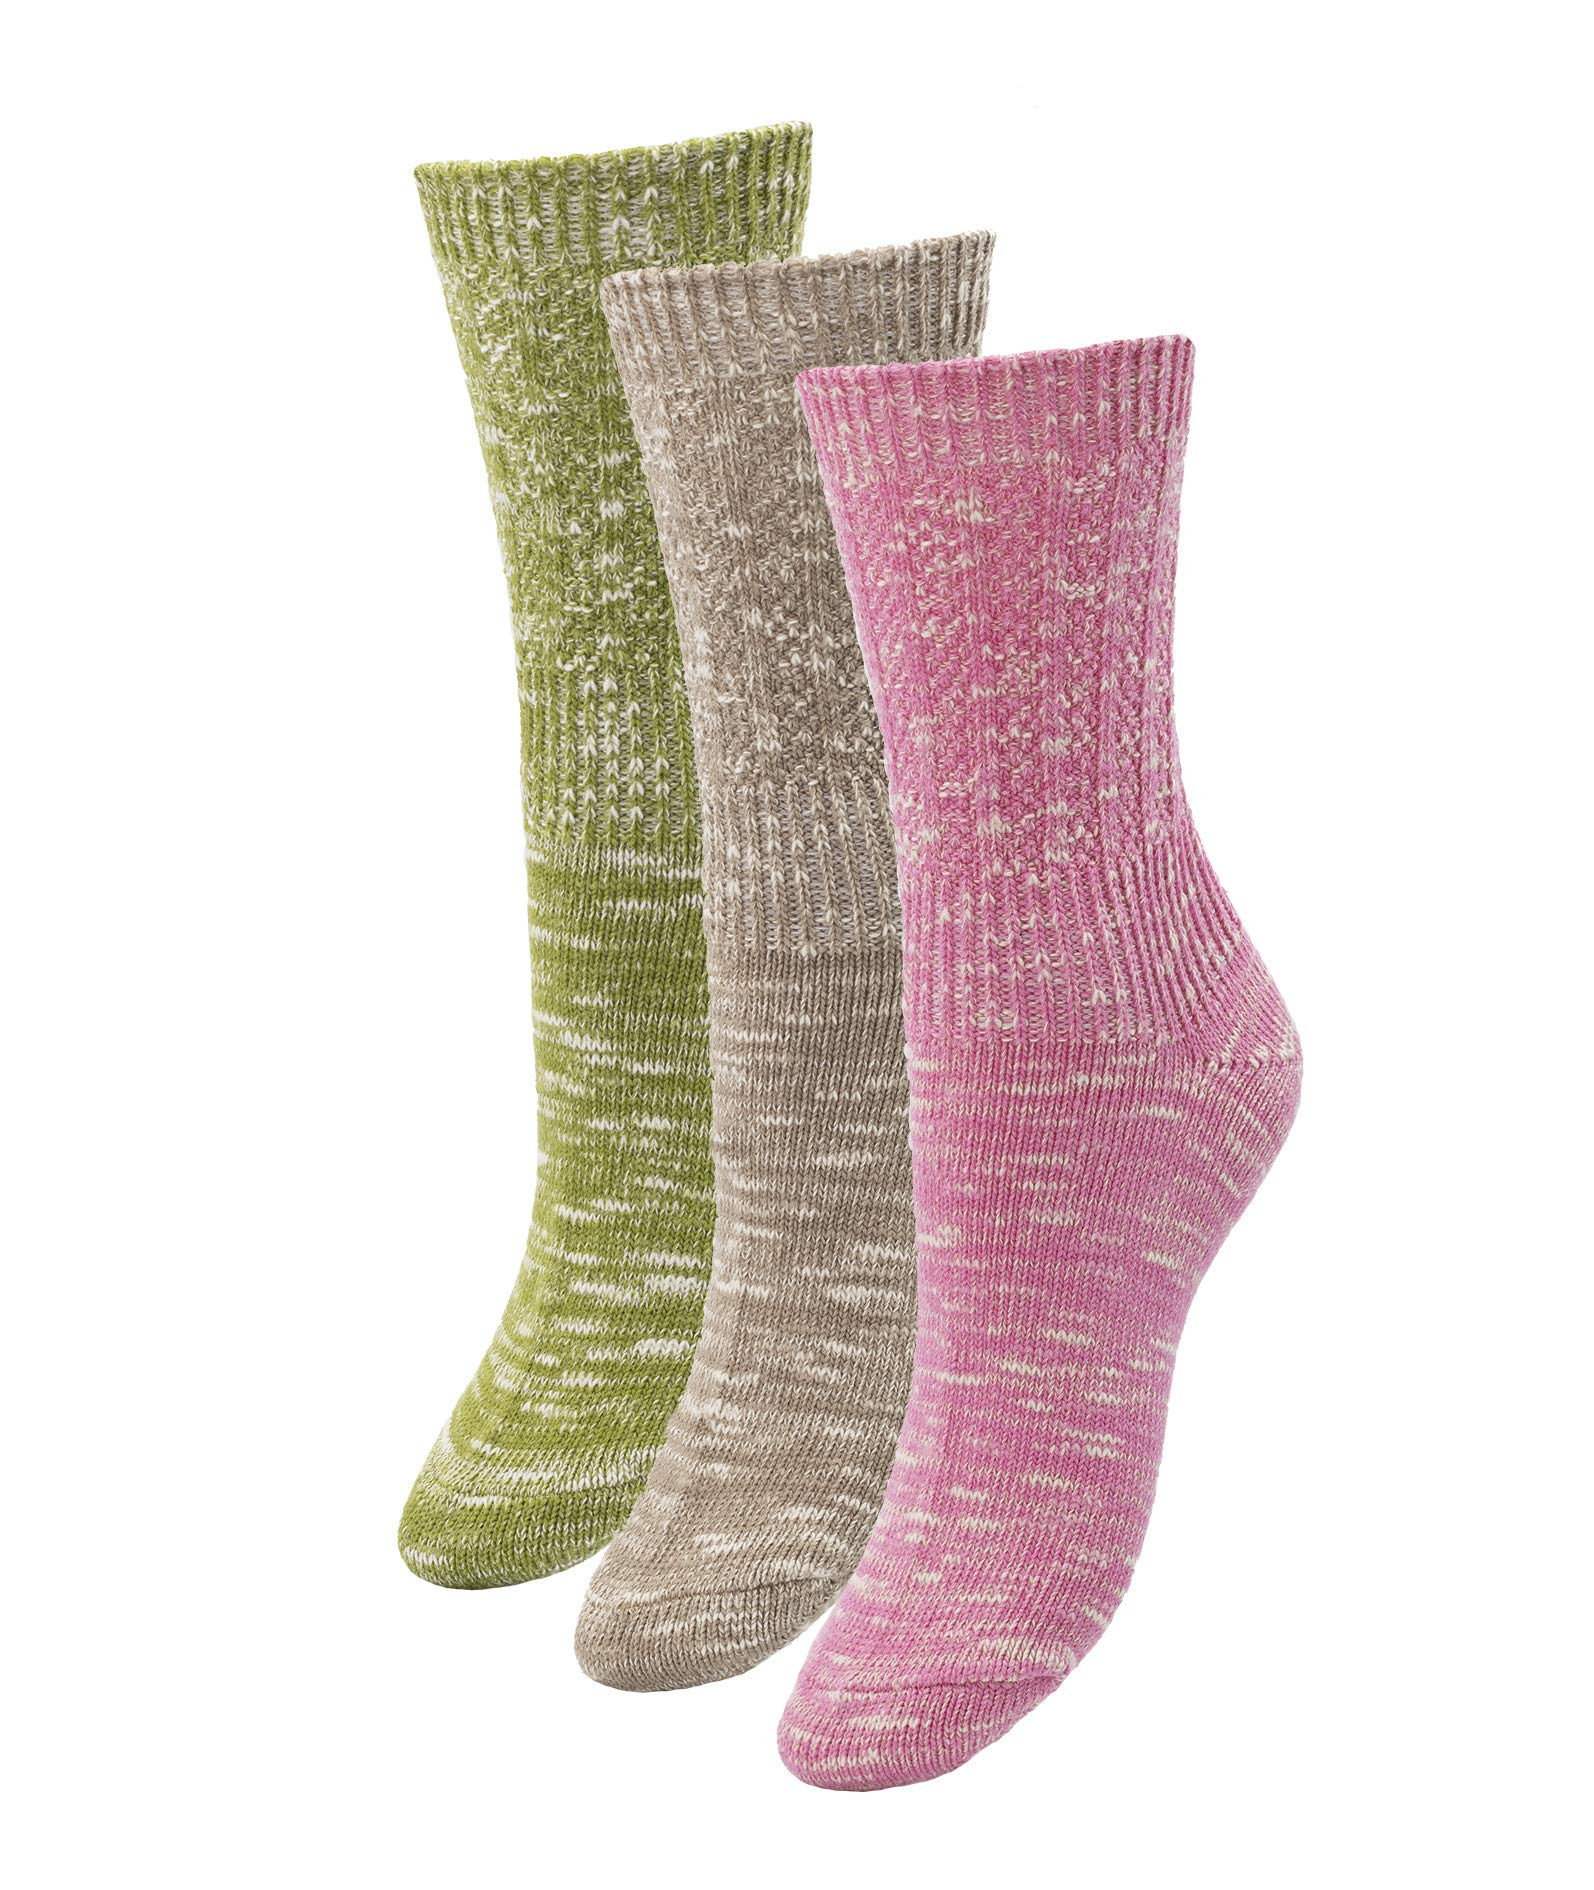 Women's Warm Winter Cotton Socks - Multi-Pack -Thick & Cozy Outdoor Trail Colorful Crew Sock Fits Women (Shoe Size 6-10)